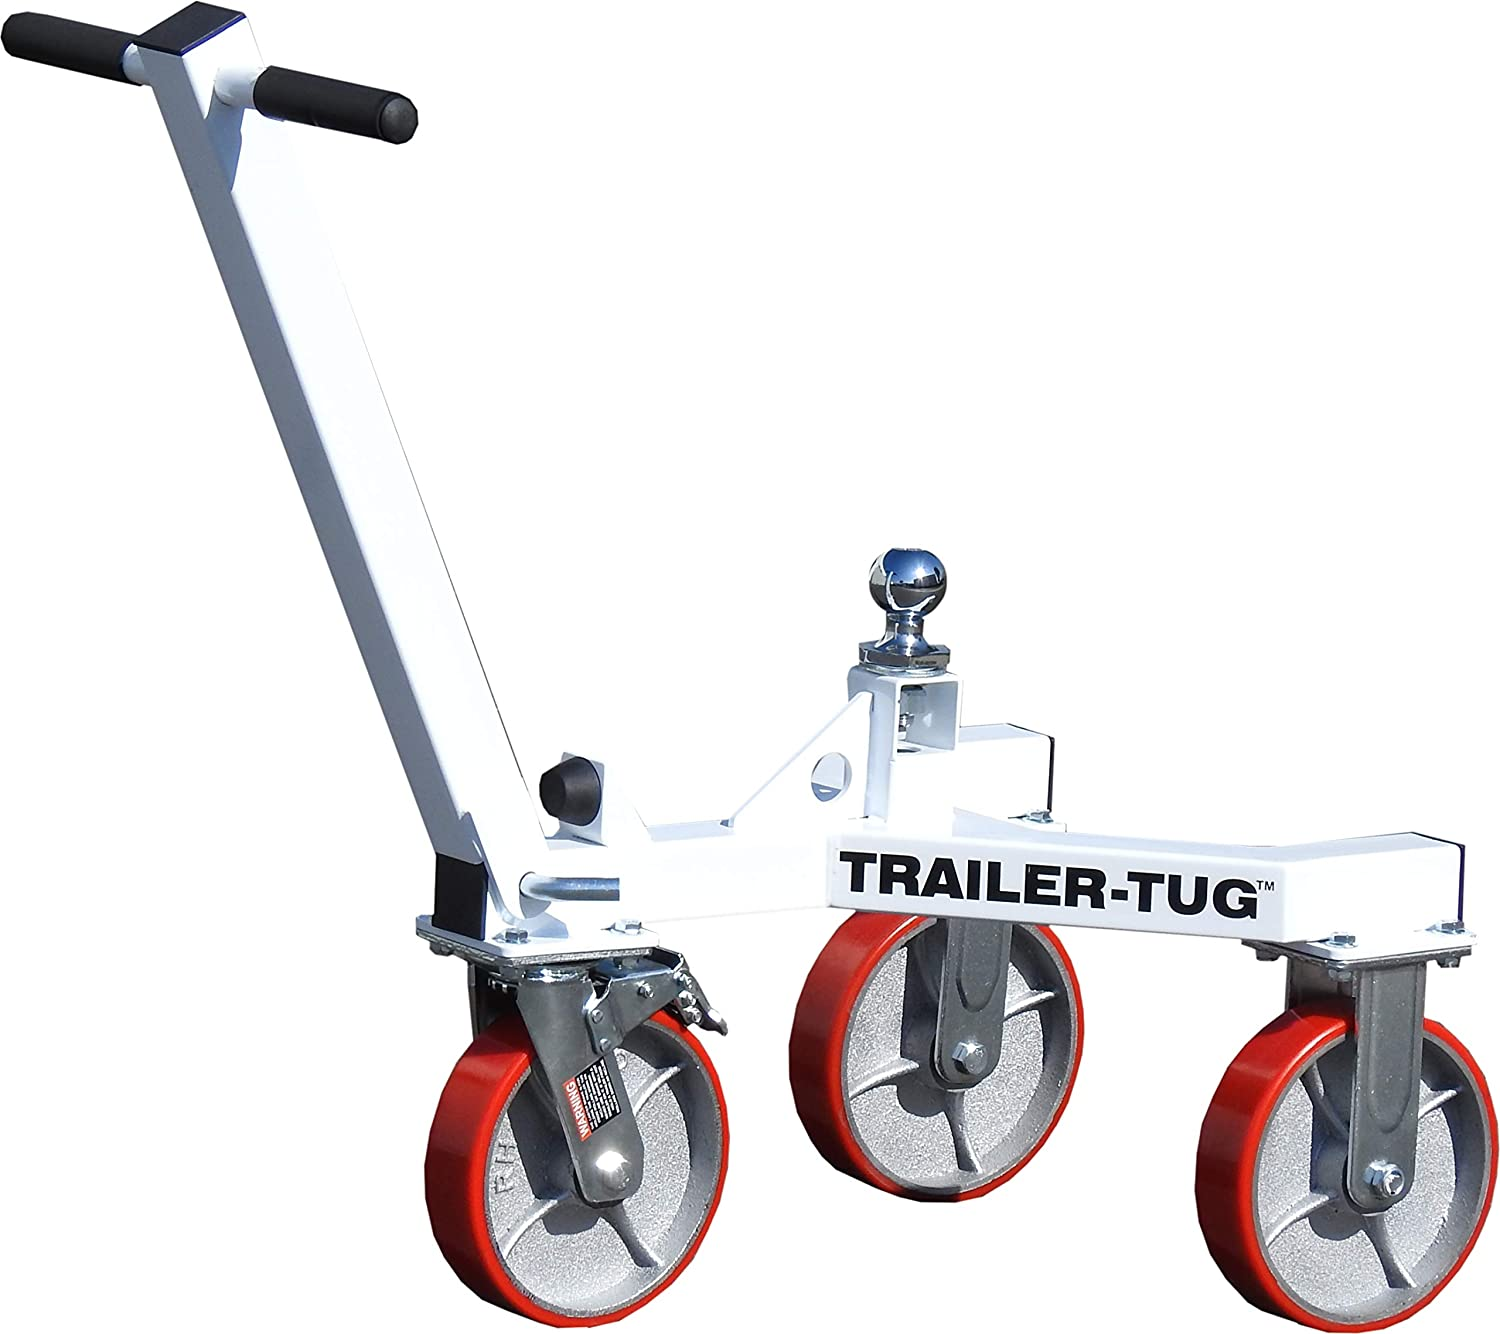 Trailer-Tug Trailer Dolly